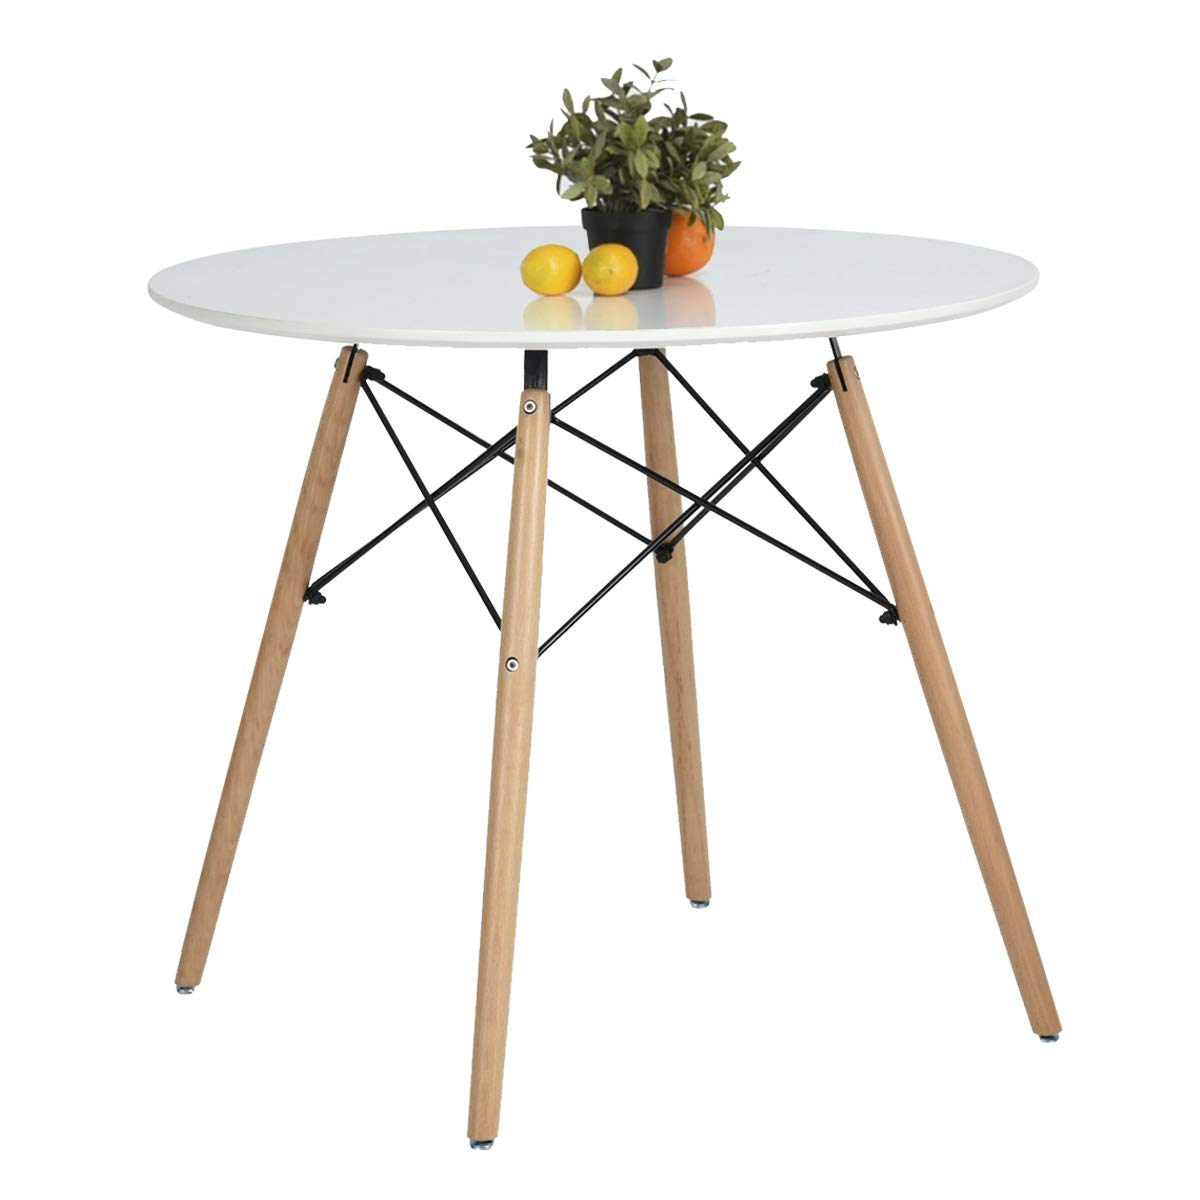 Coavas Kitchen Dining Table White Round Coffee Table Modern Leisure Wooden Tea Table Office Conference Pedestal Desk by Coavas (Image #1)